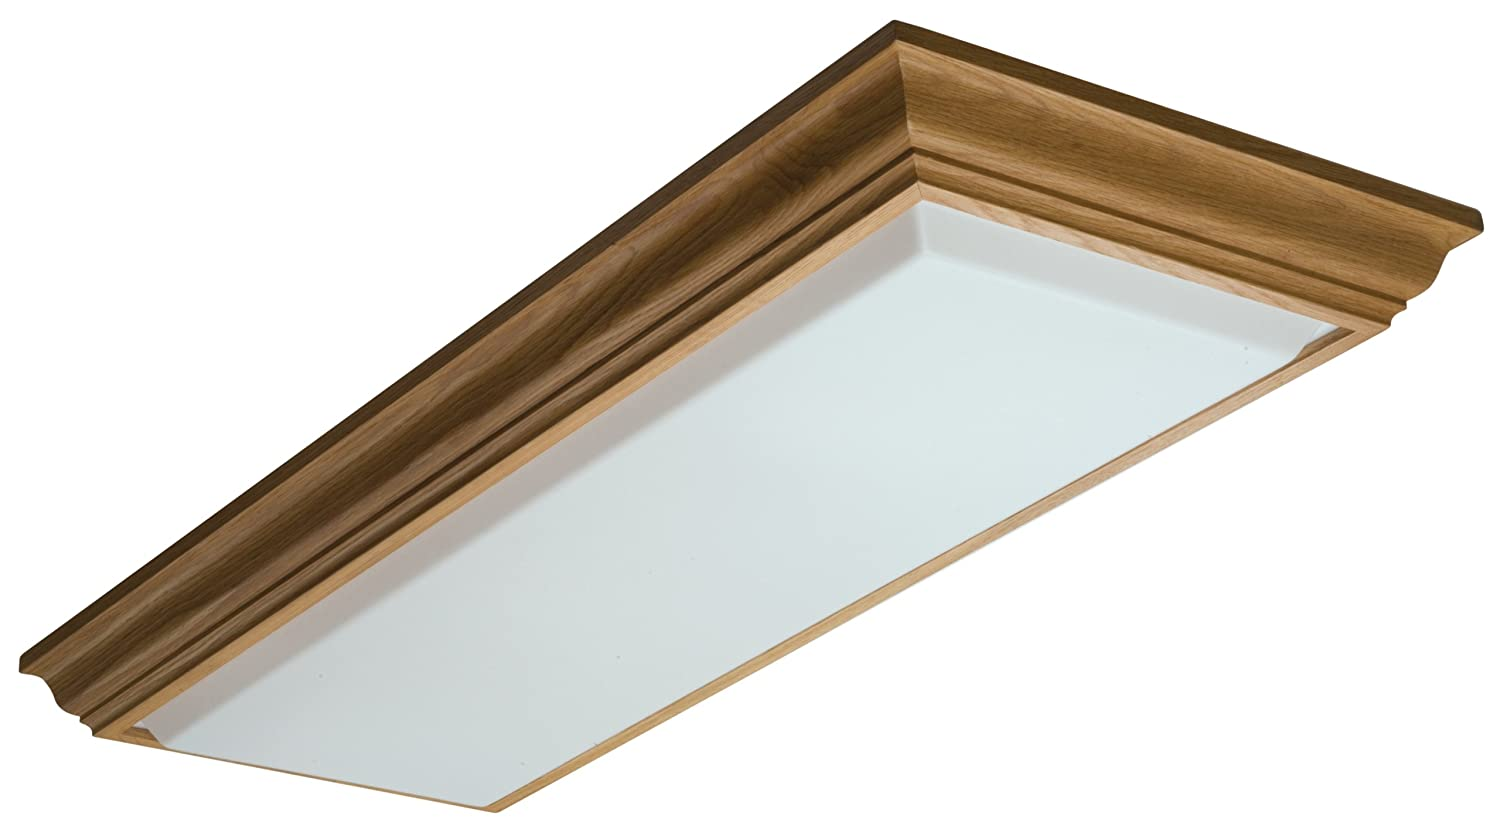 Kitchen Flush Mount Ceiling Lights Amazon lithonia lighting 11432re oa cambridge linear t8 flush amazon lithonia lighting 11432re oa cambridge linear t8 flush mount ceiling light oak home improvement workwithnaturefo